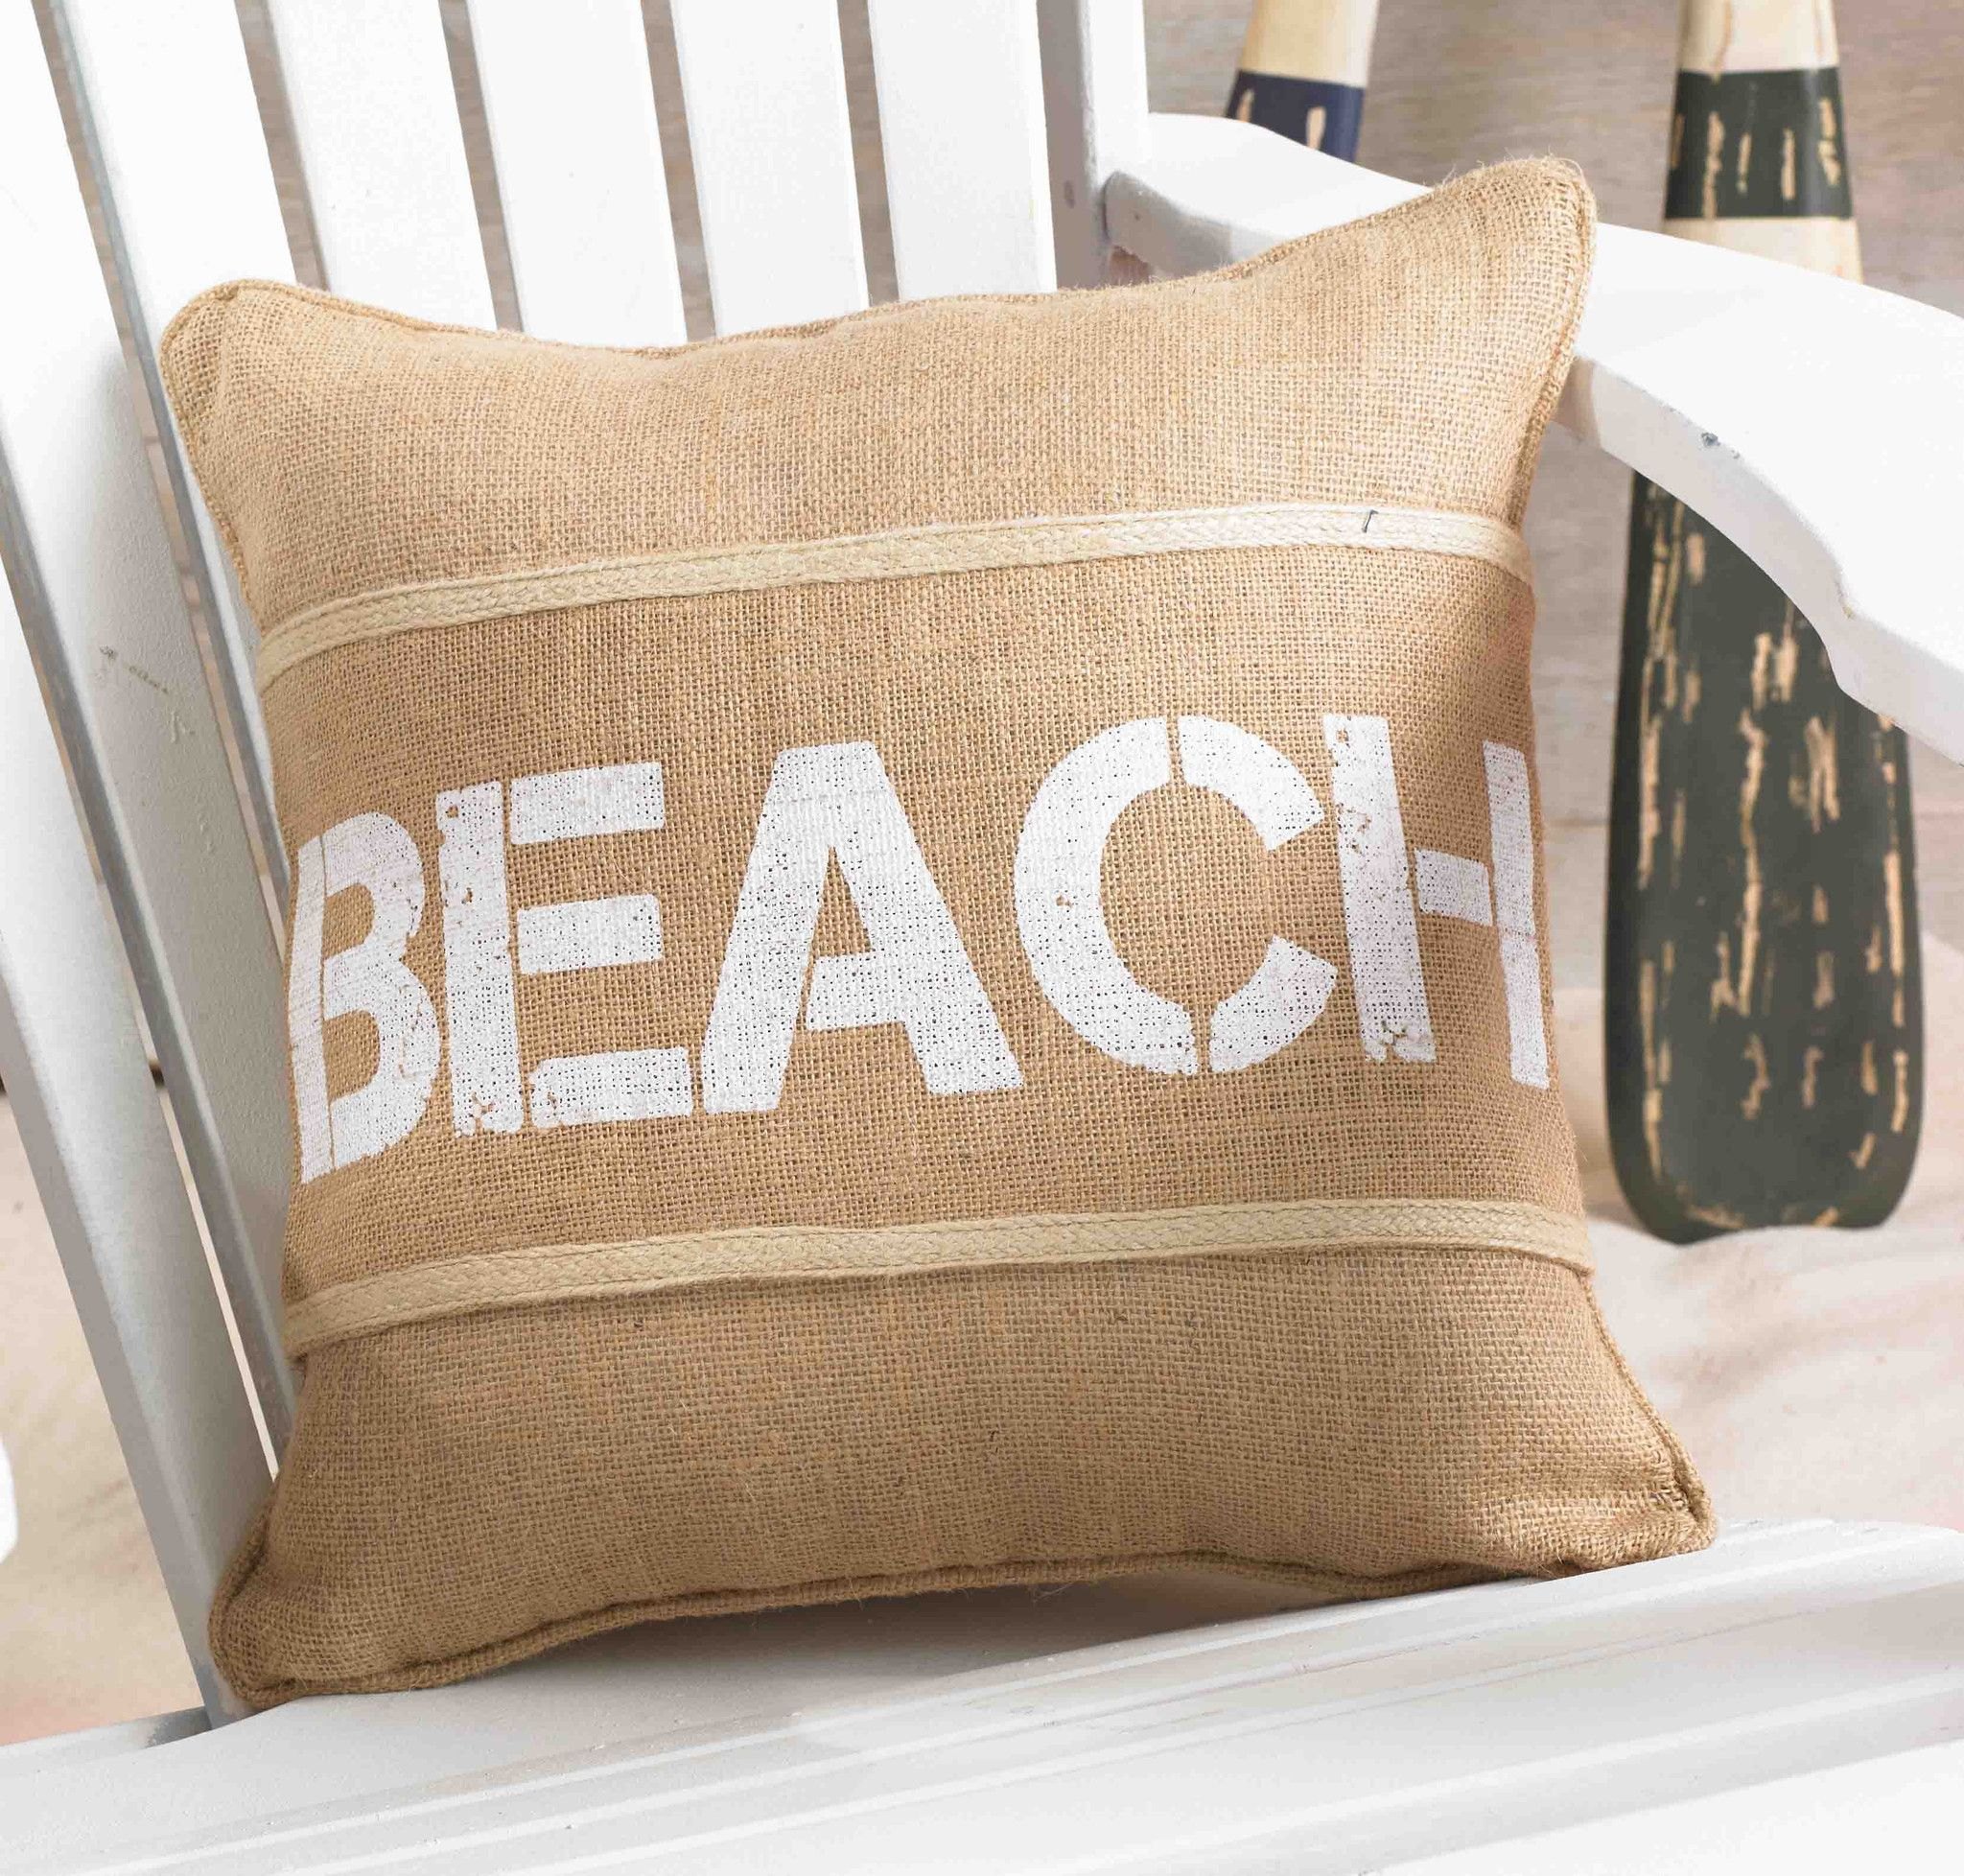 singapore res palmbeachm pillow pillows hi beach seafolly sg palm moss